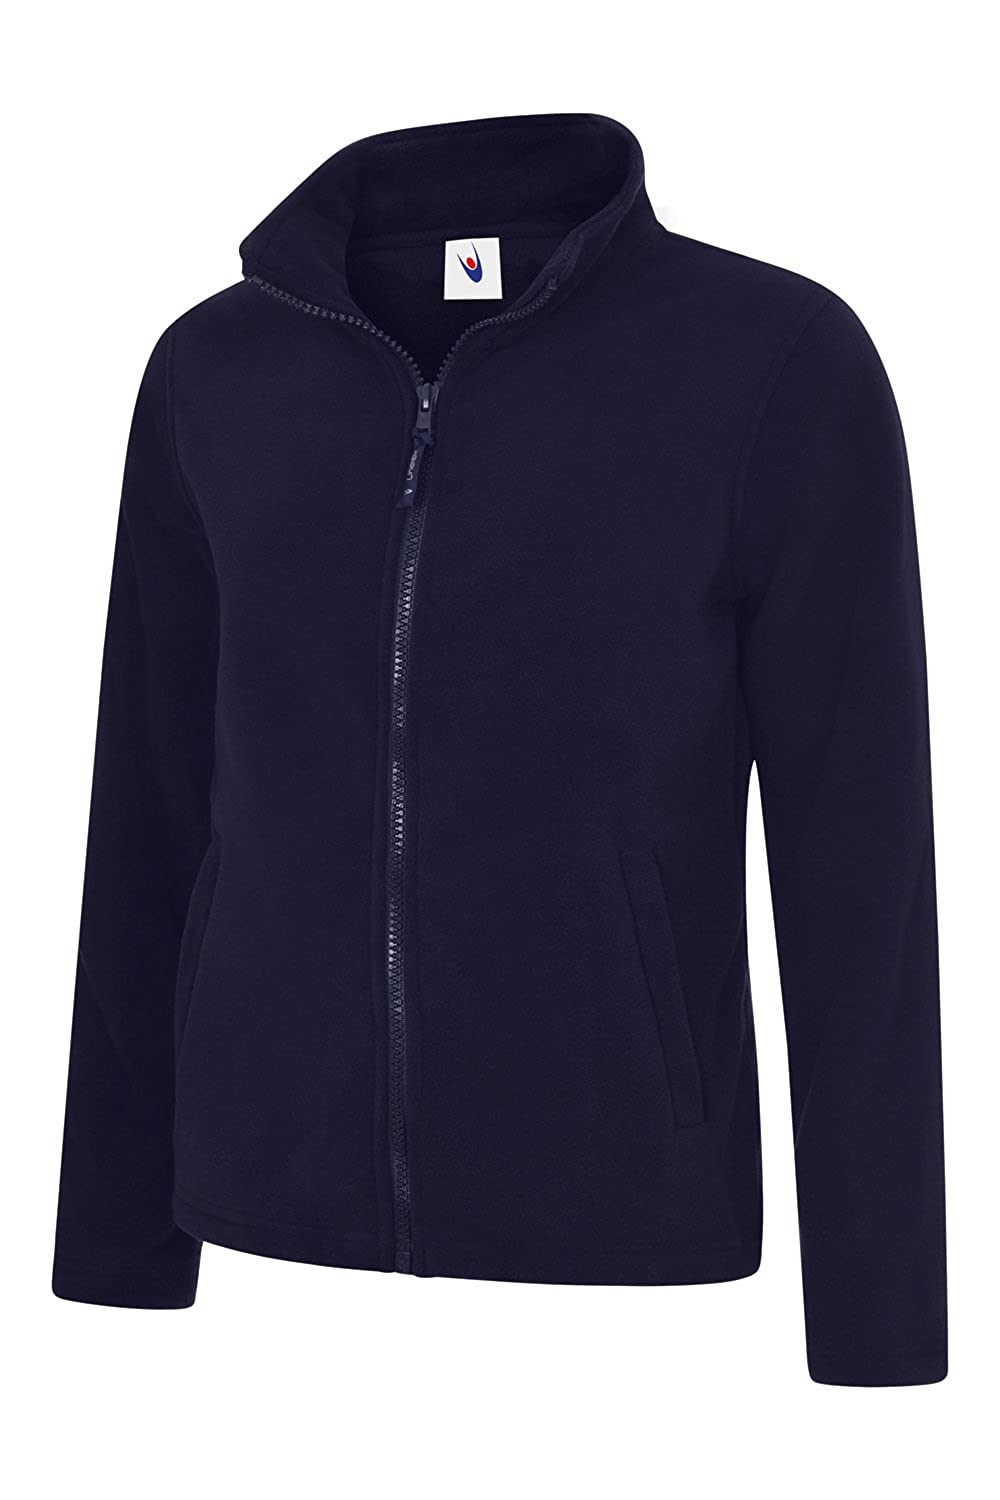 TALLA Medium. Uneek clothing-Womens-Ladies clásico Cremallera Completa Chaqueta de Forro Polar